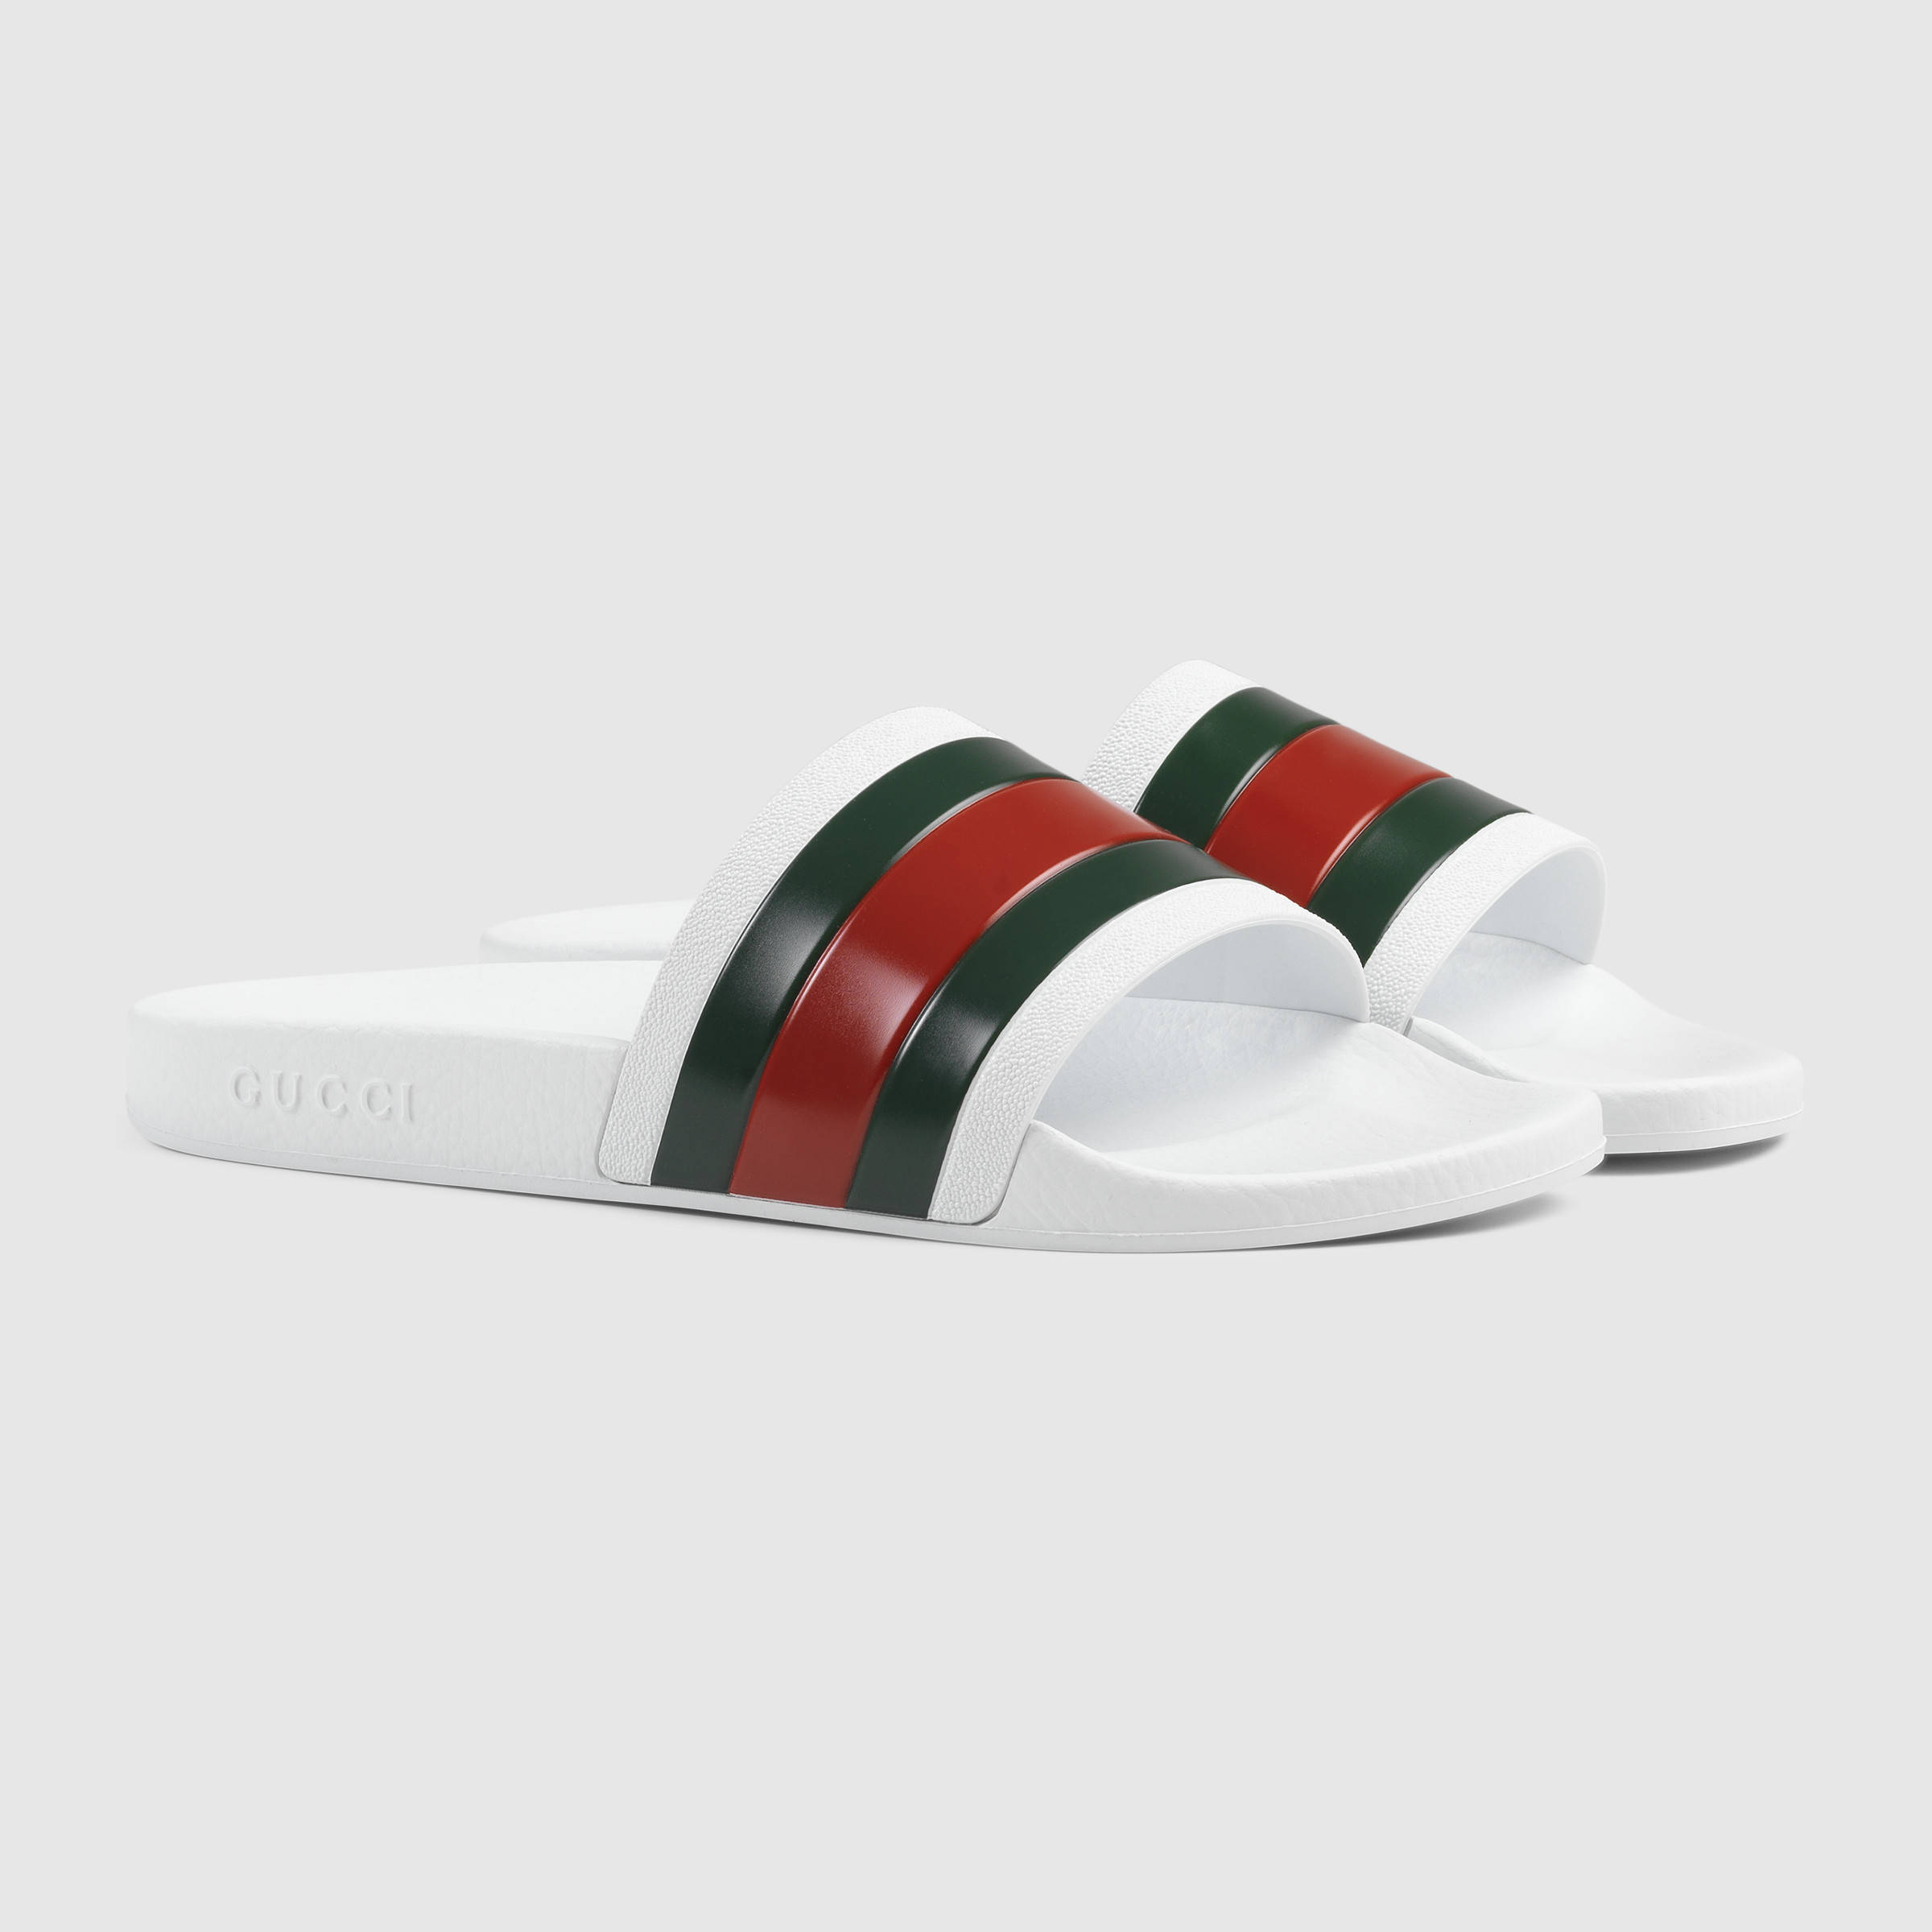 ed233ee7e Are Gucci Flip Flops Worth It?